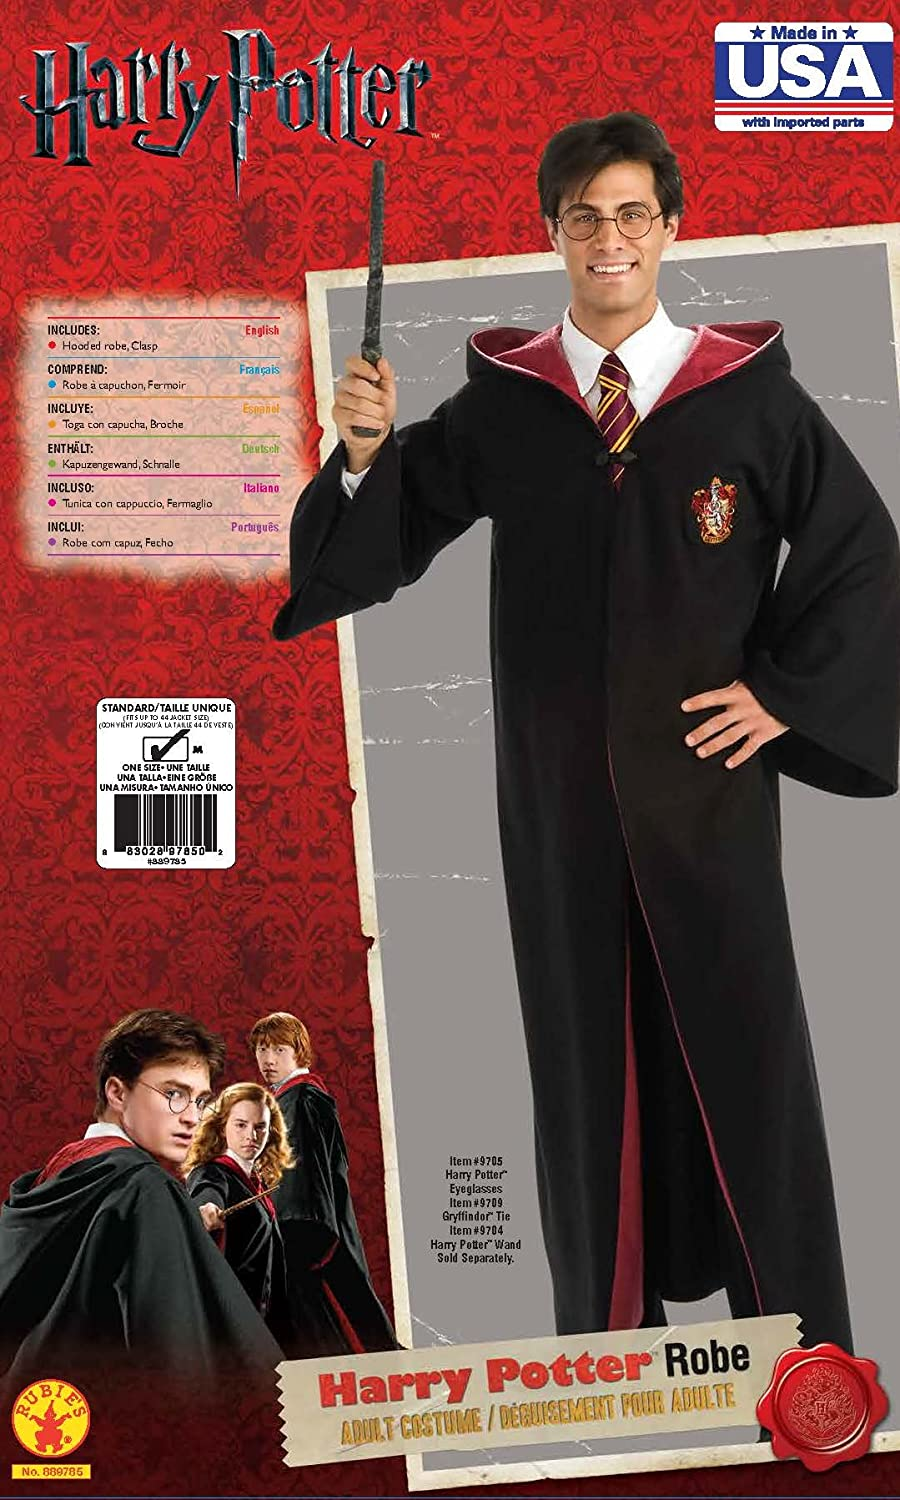 Rubie's Costume Co - Harry Potter Deluxe Robe Adult Costume Rubies Costumes - Apparel 889785